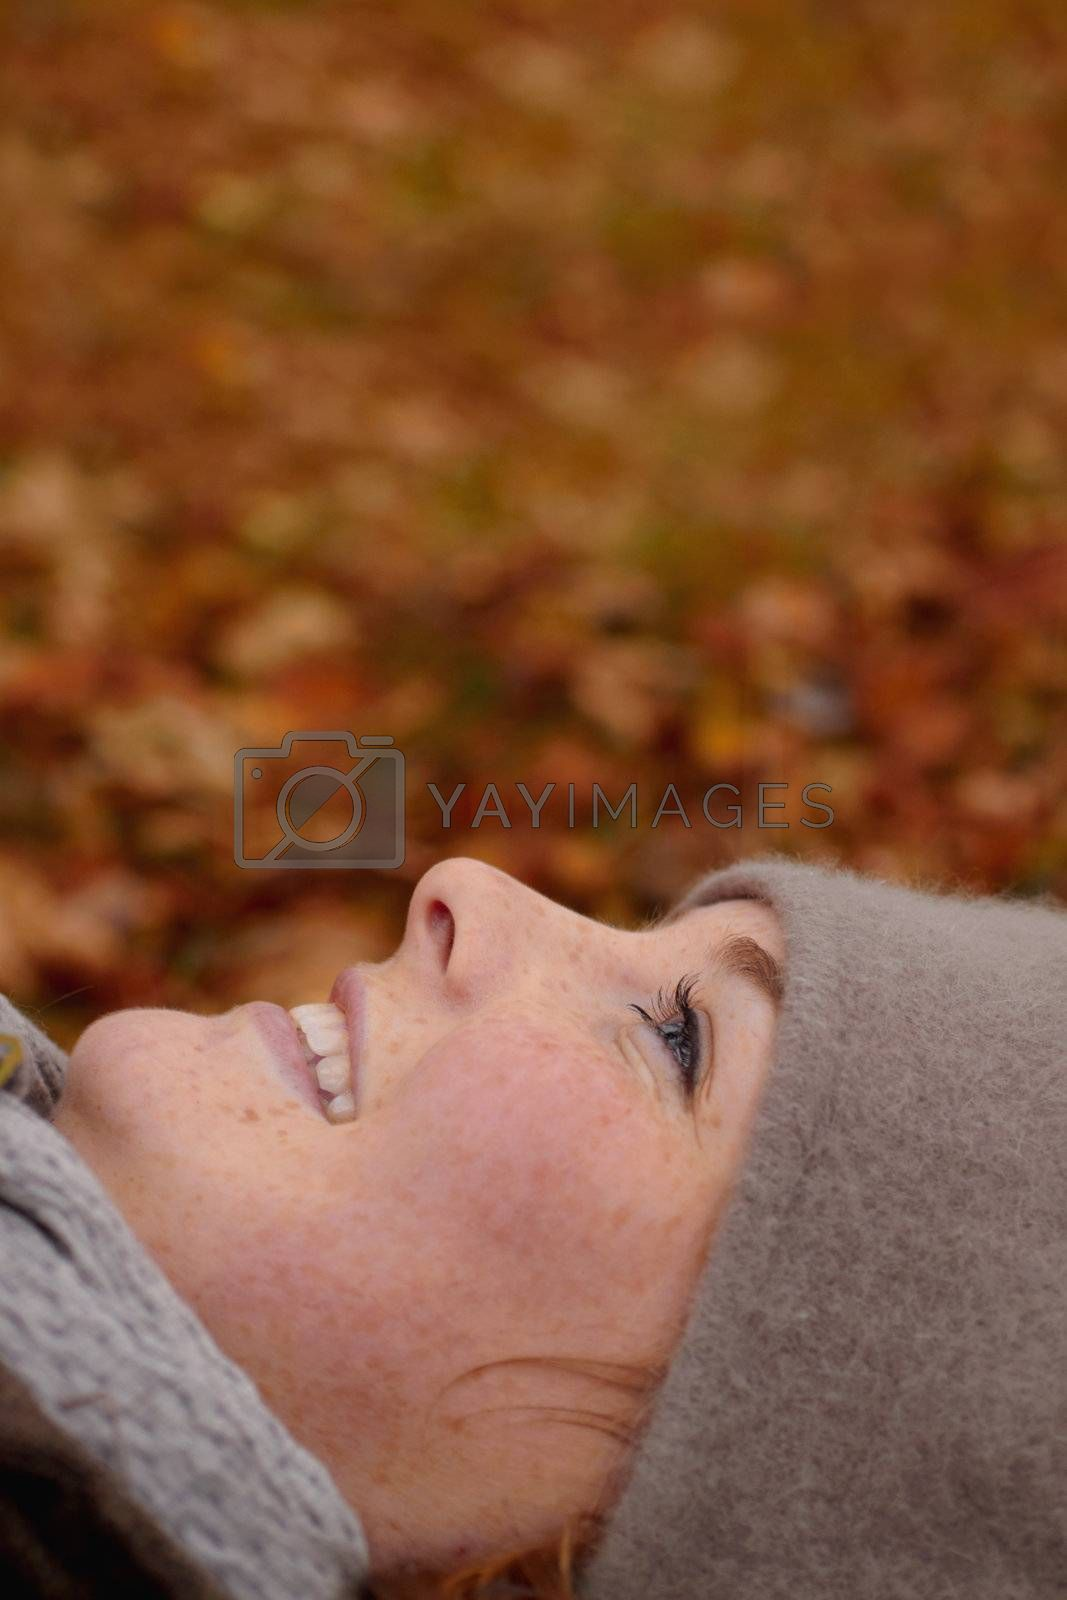 Royalty free image of Beautiful young woman looking up at copy space by FreedomImage